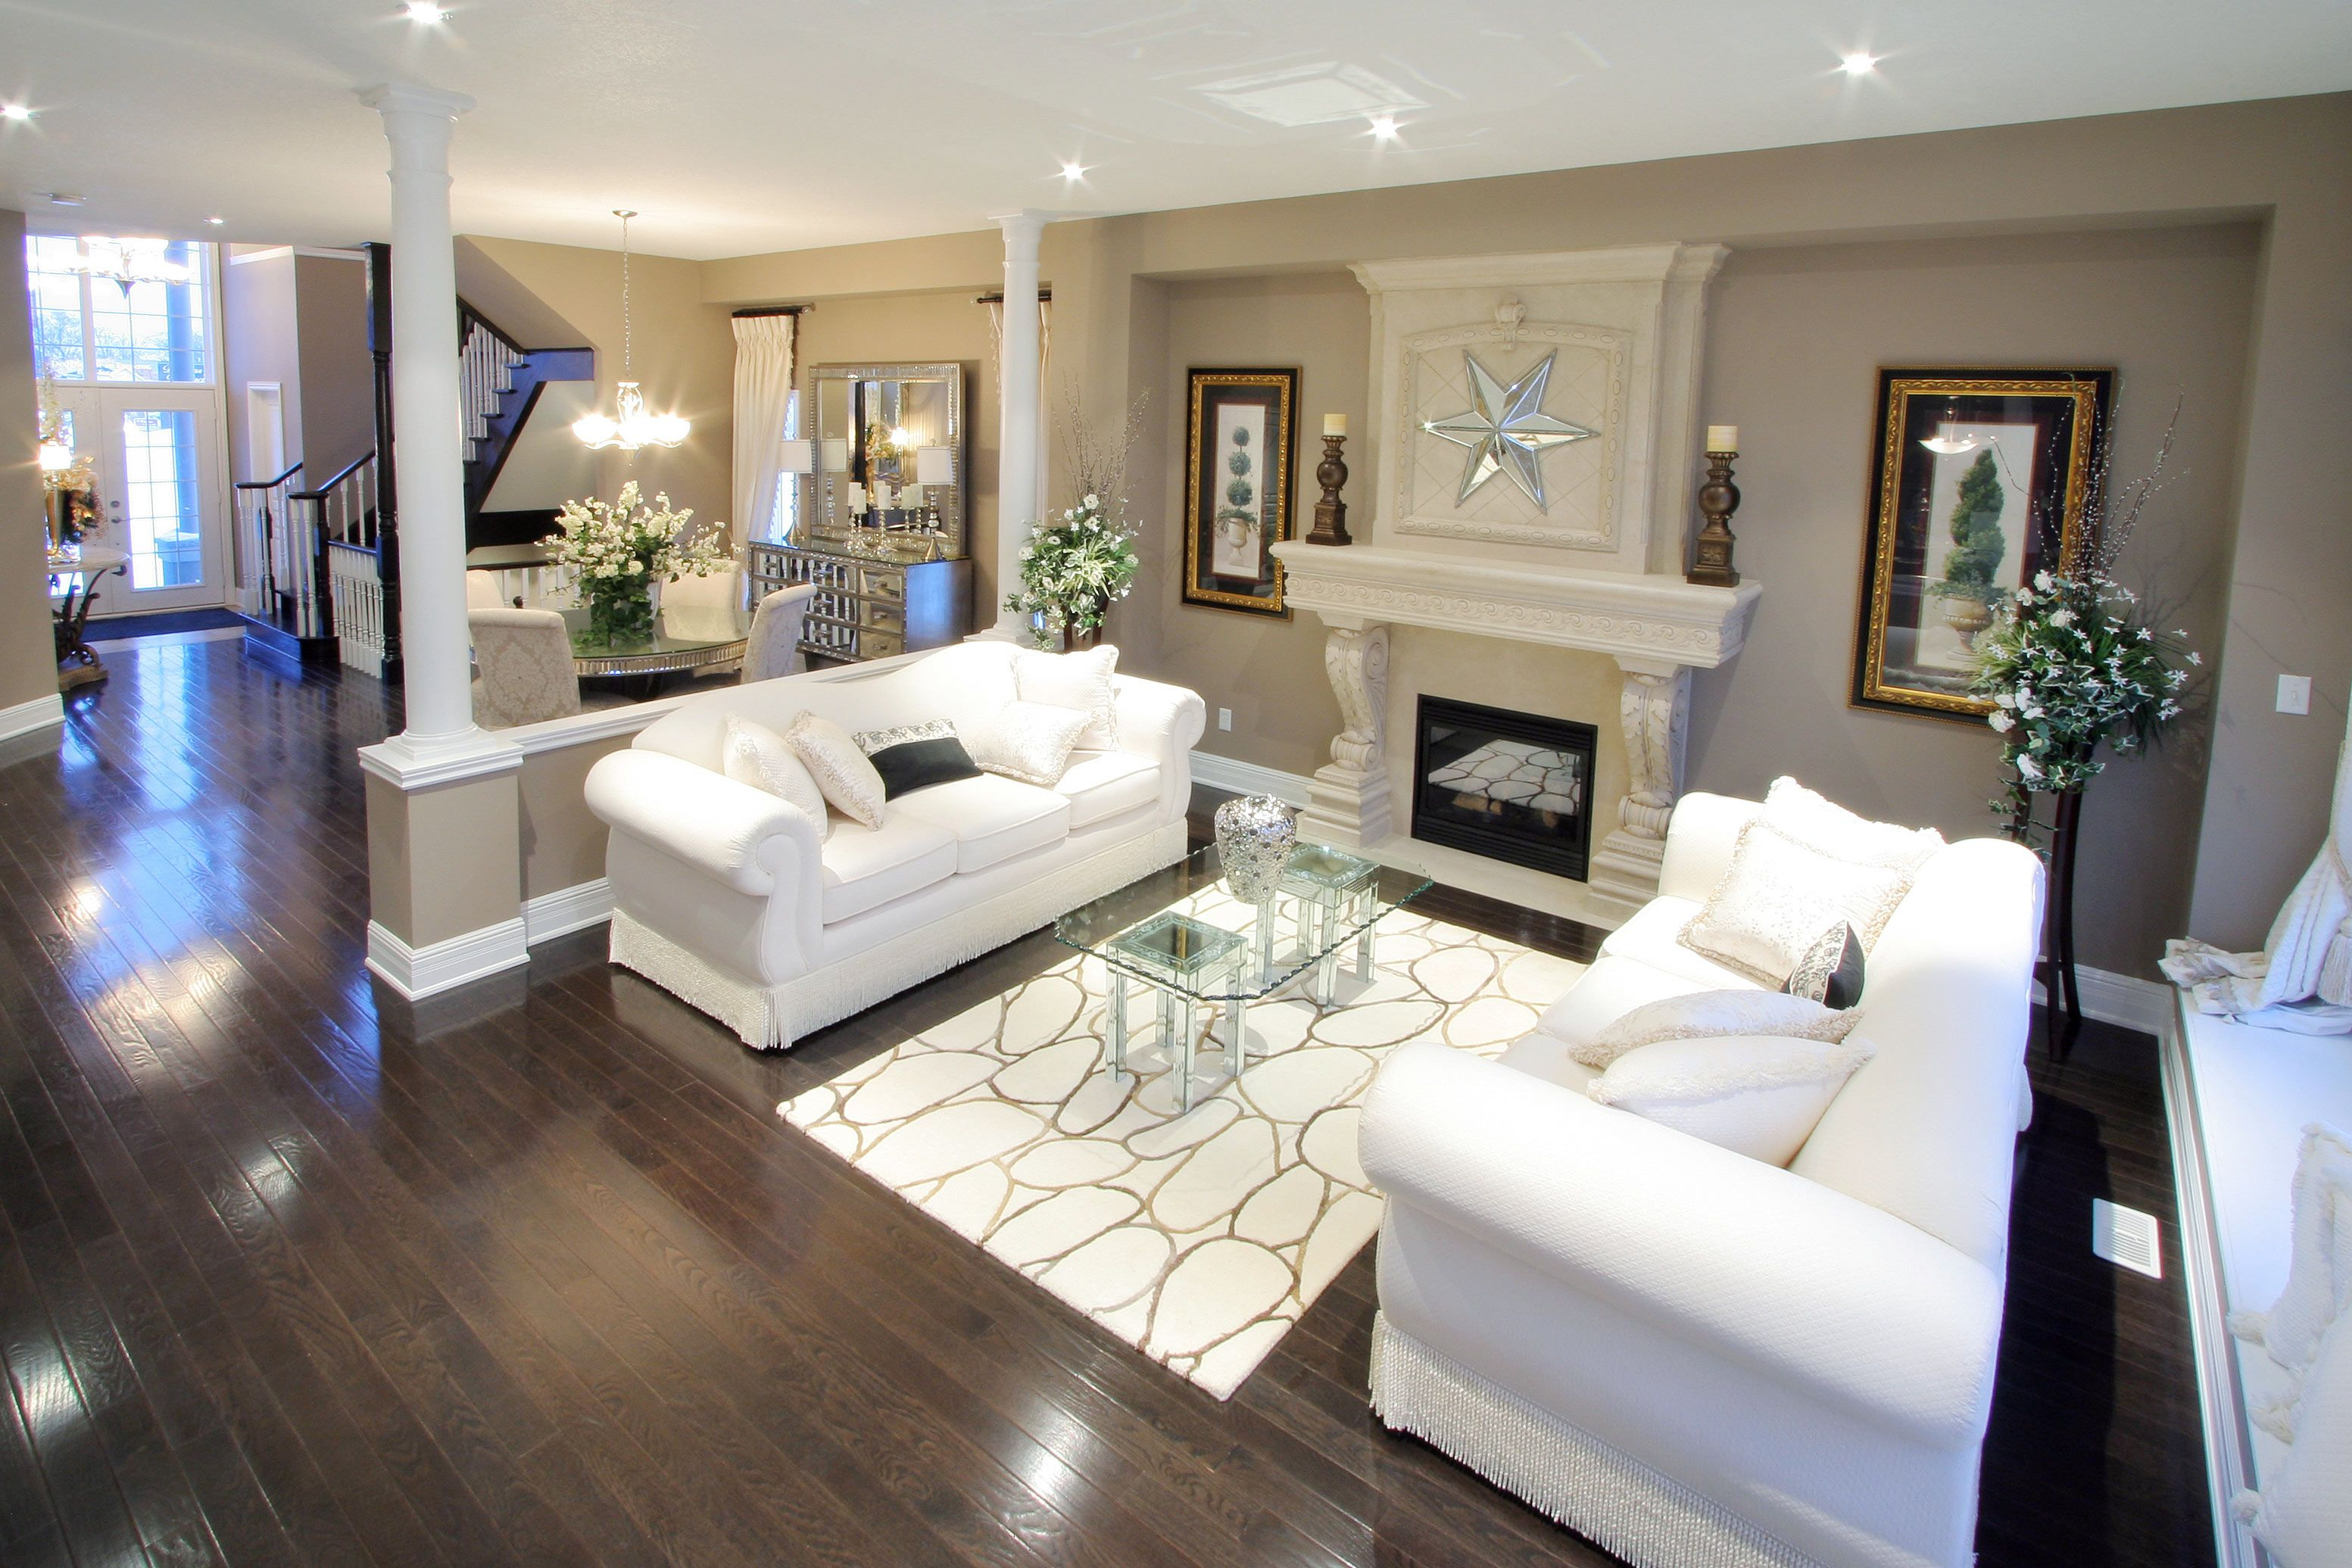 Dark Flooring Contrast Nicely With The Beige Pallet And White